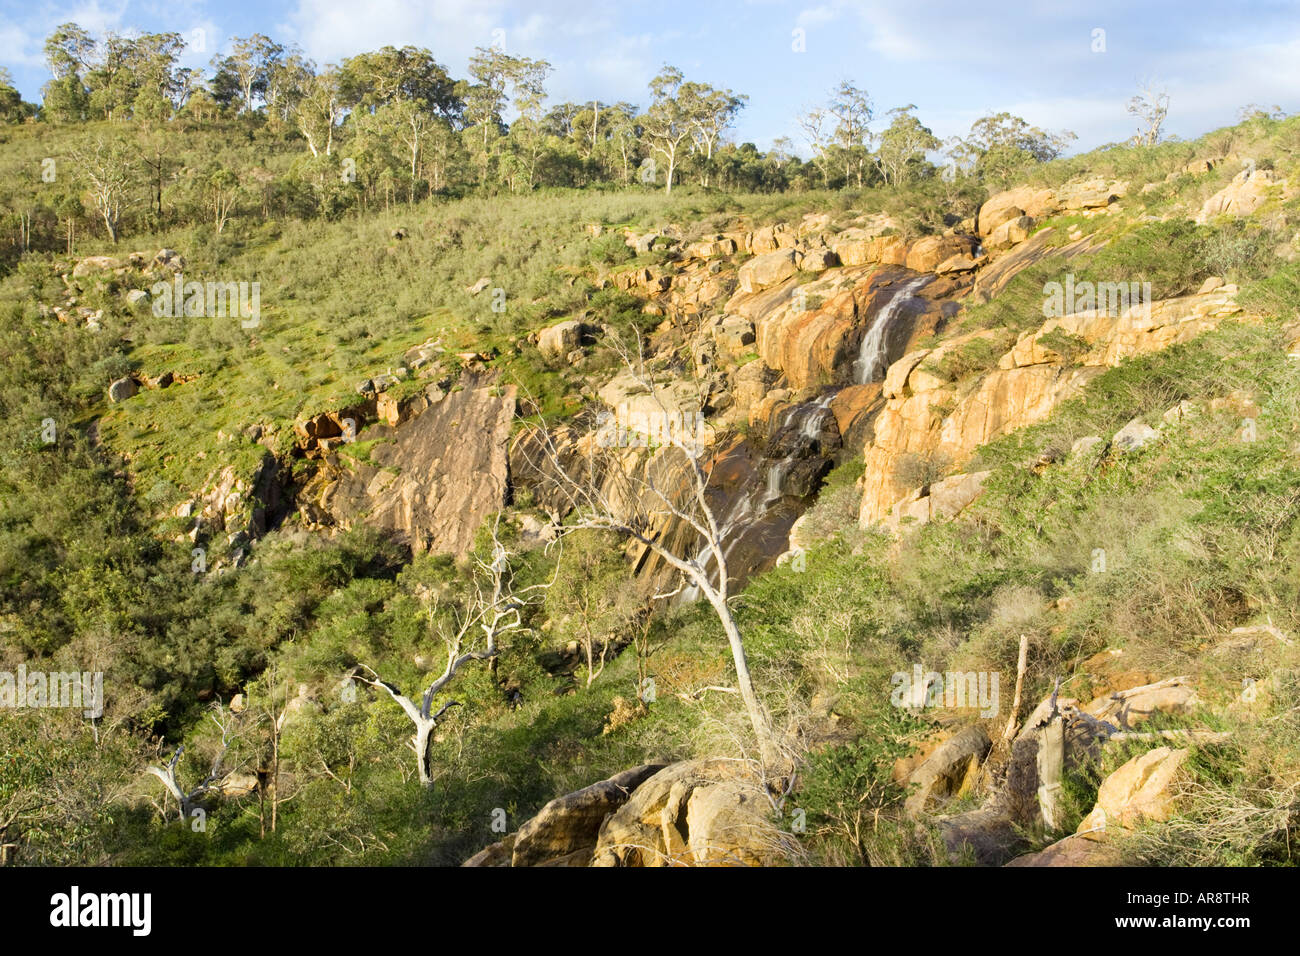 Eucalyptus Trees growing beside Ellis Brook waterfall in the Perth Hills (Darling Scarp), Western Australia - Stock Image